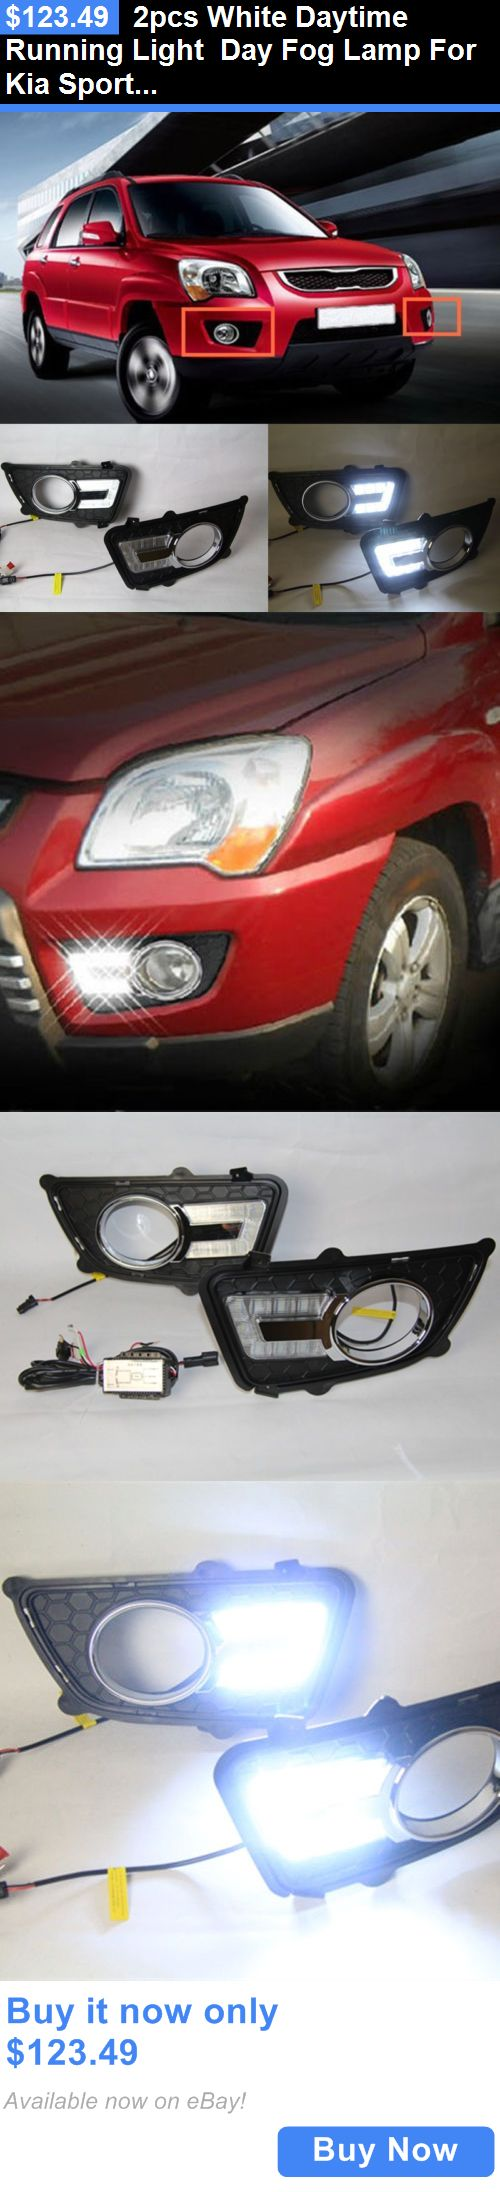 10 best sportage ideas images on pinterest kia sportage motors parts and accessories 2pcs white daytime running light day fog lamp for kia sportage sciox Image collections